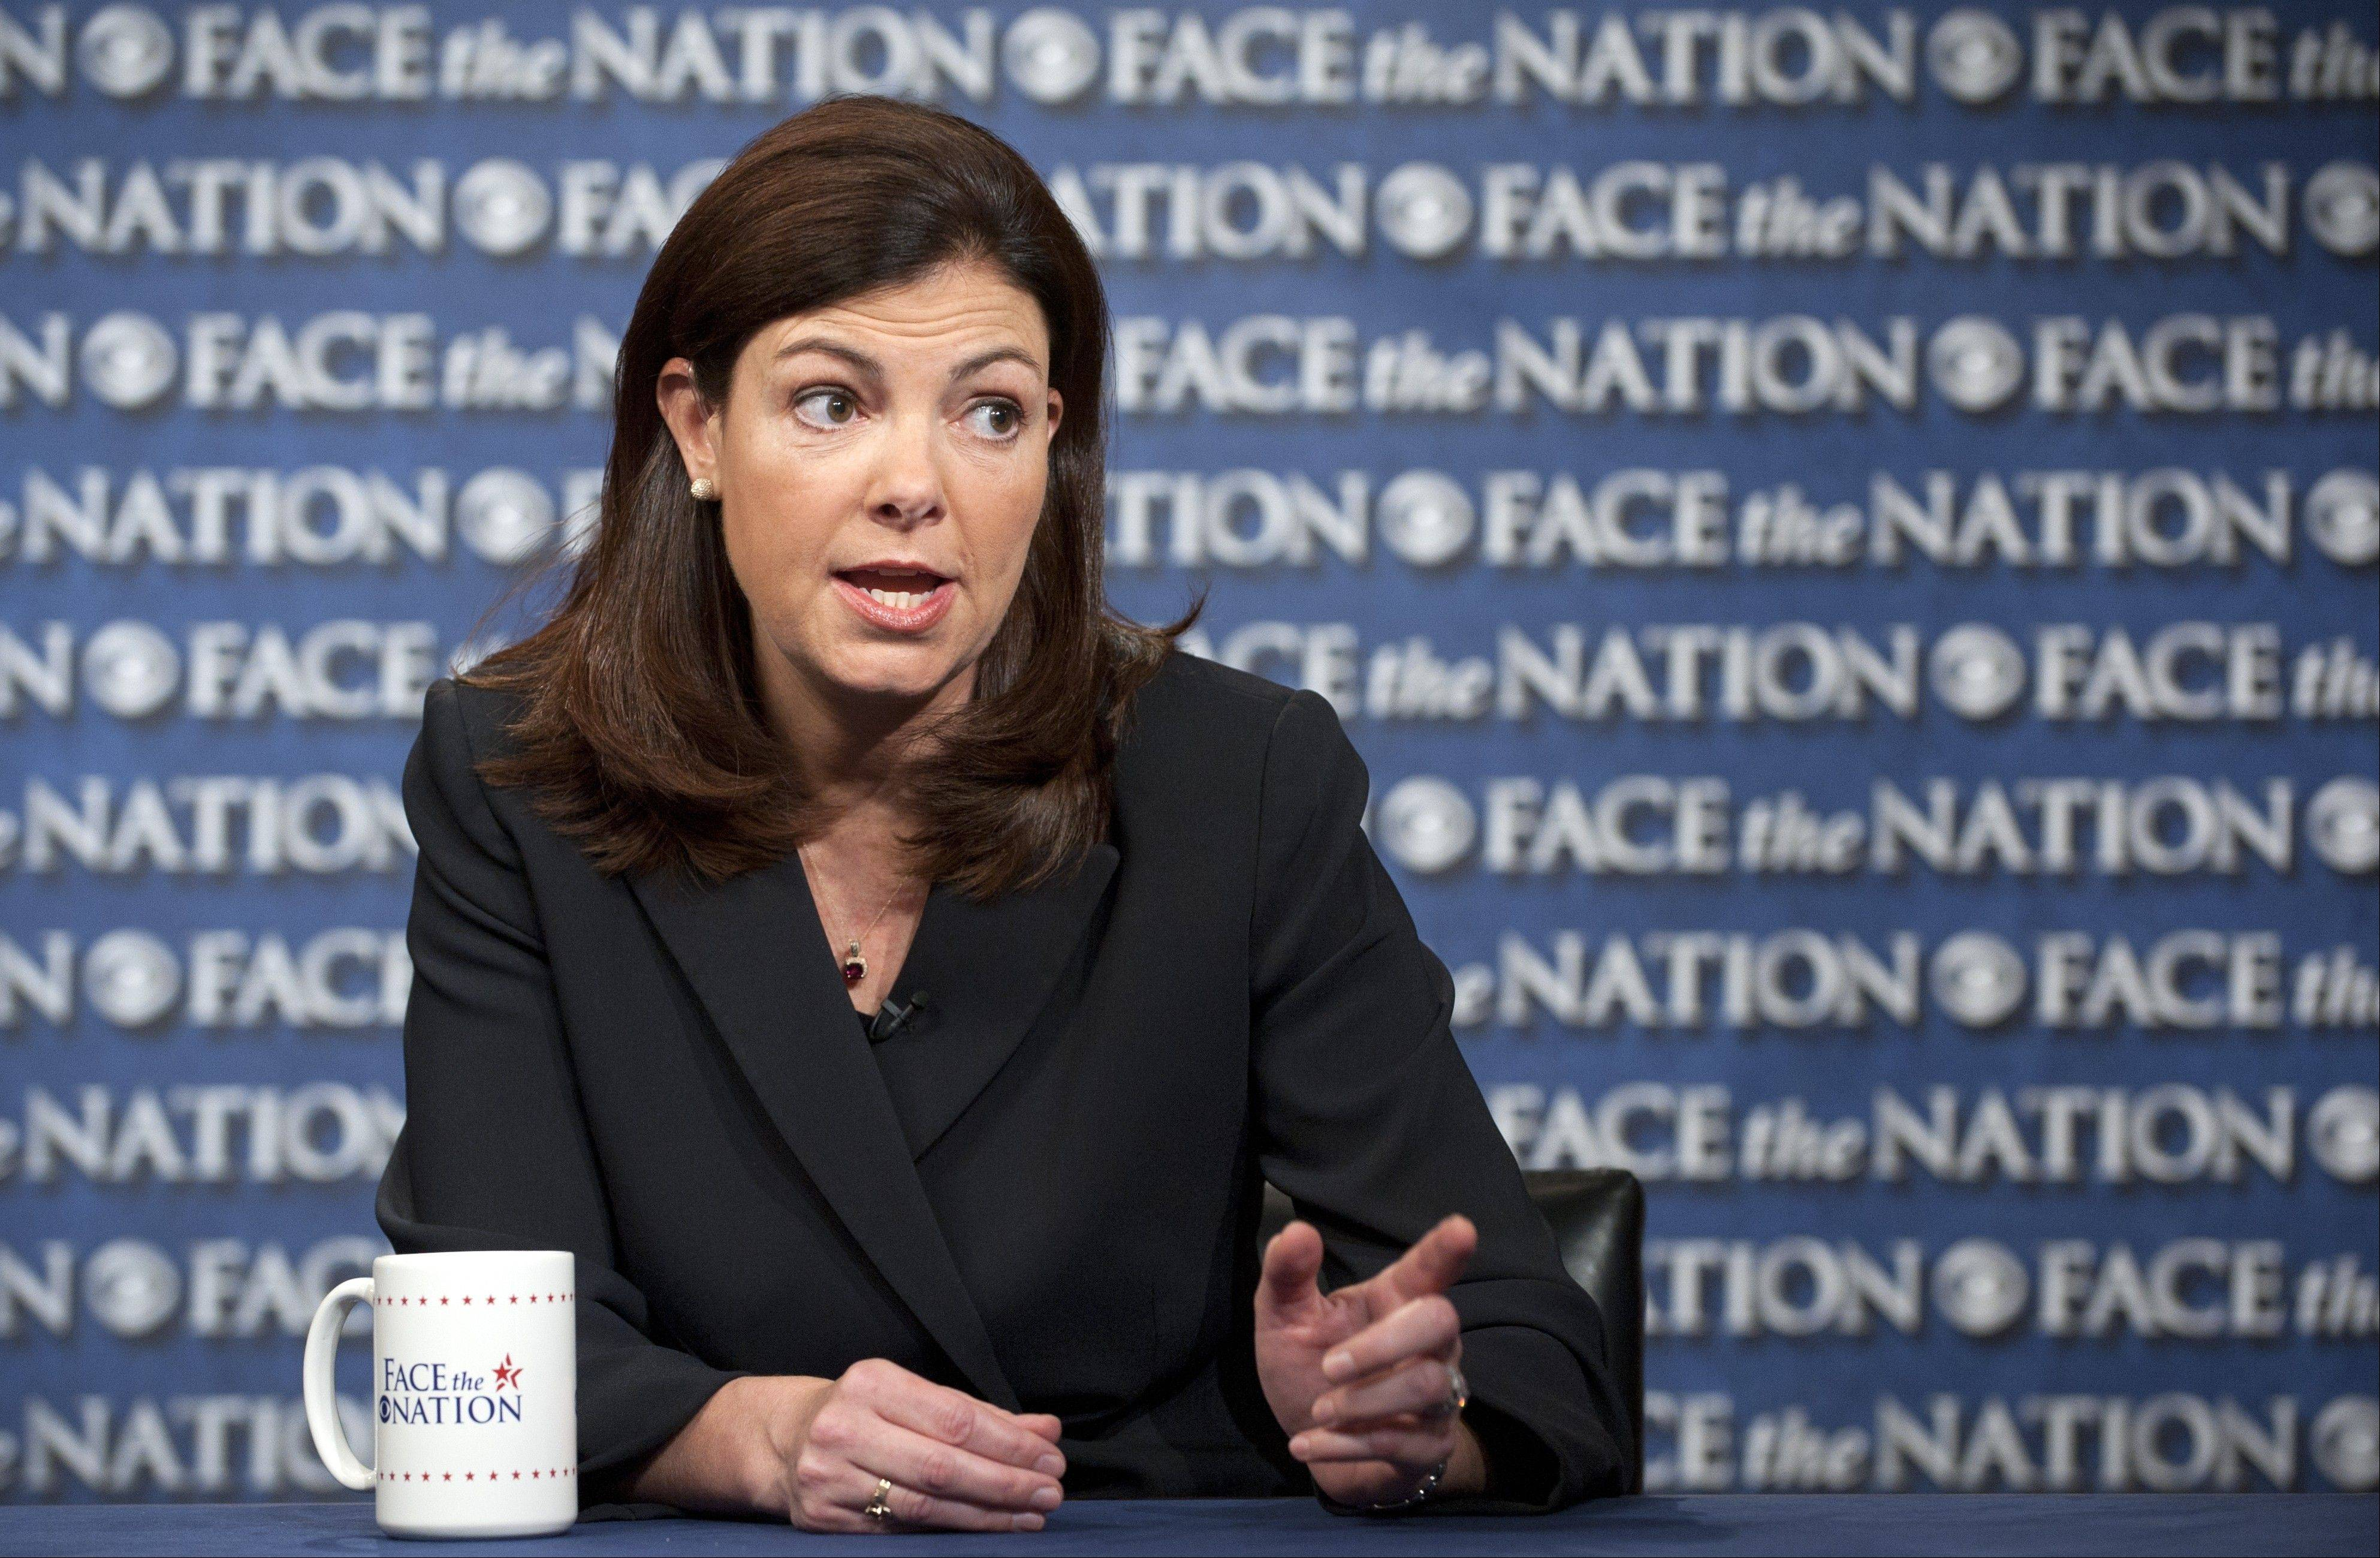 Sen. Kelly Ayotte, appearing on CBS�s �Face the Nation� Sunday, said she will back the bipartisan overhaul of the nation�s immigration system, which she said is broken and needs to be fixed.